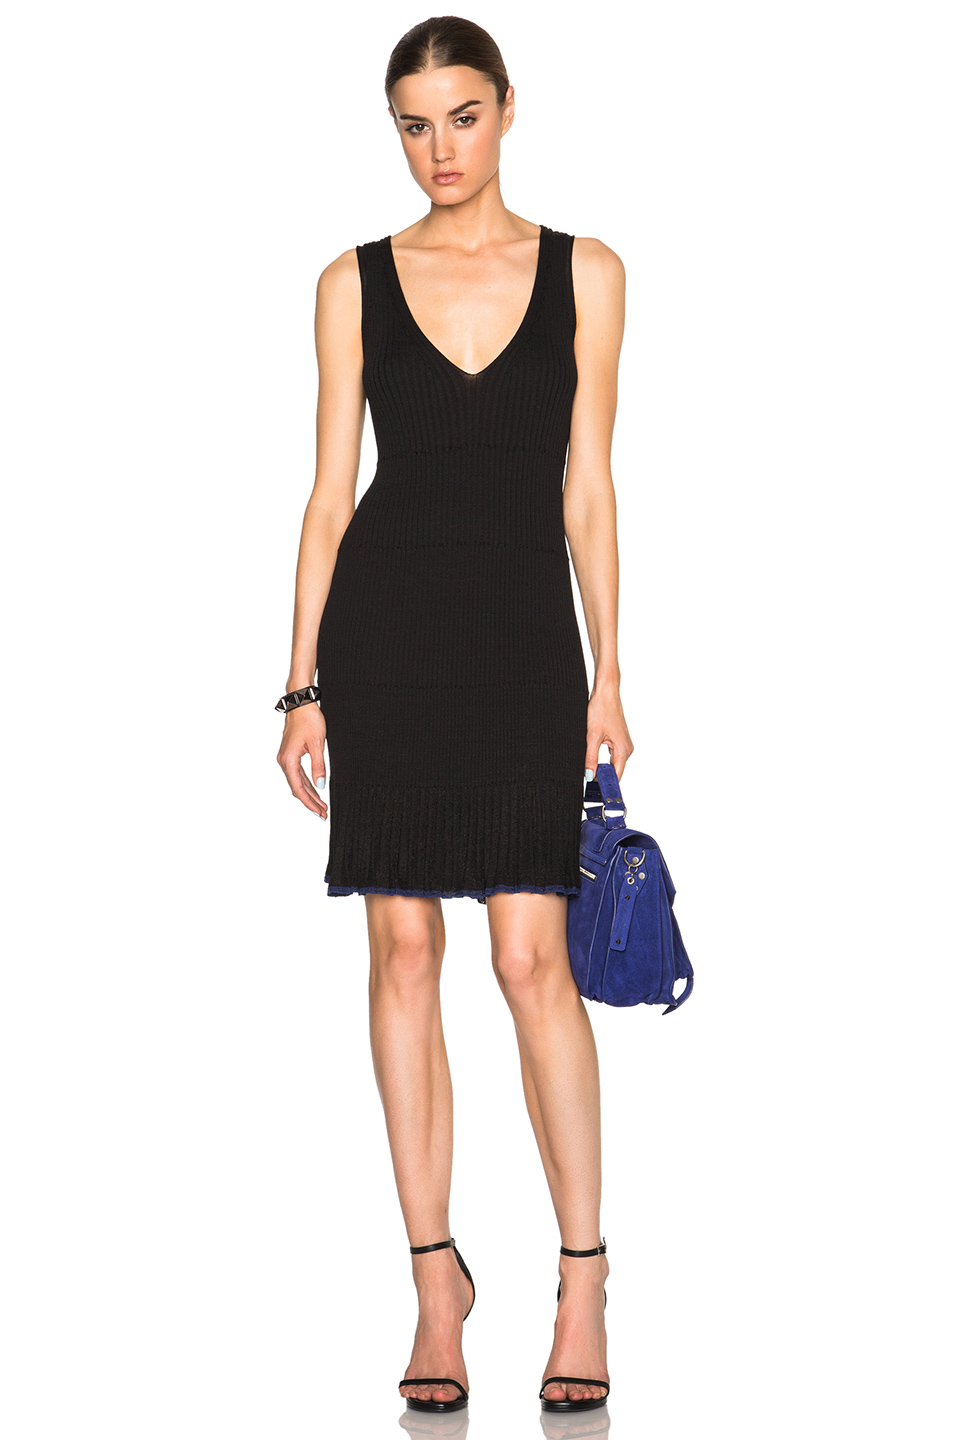 Rag & Bone Yasmine Dress in Black